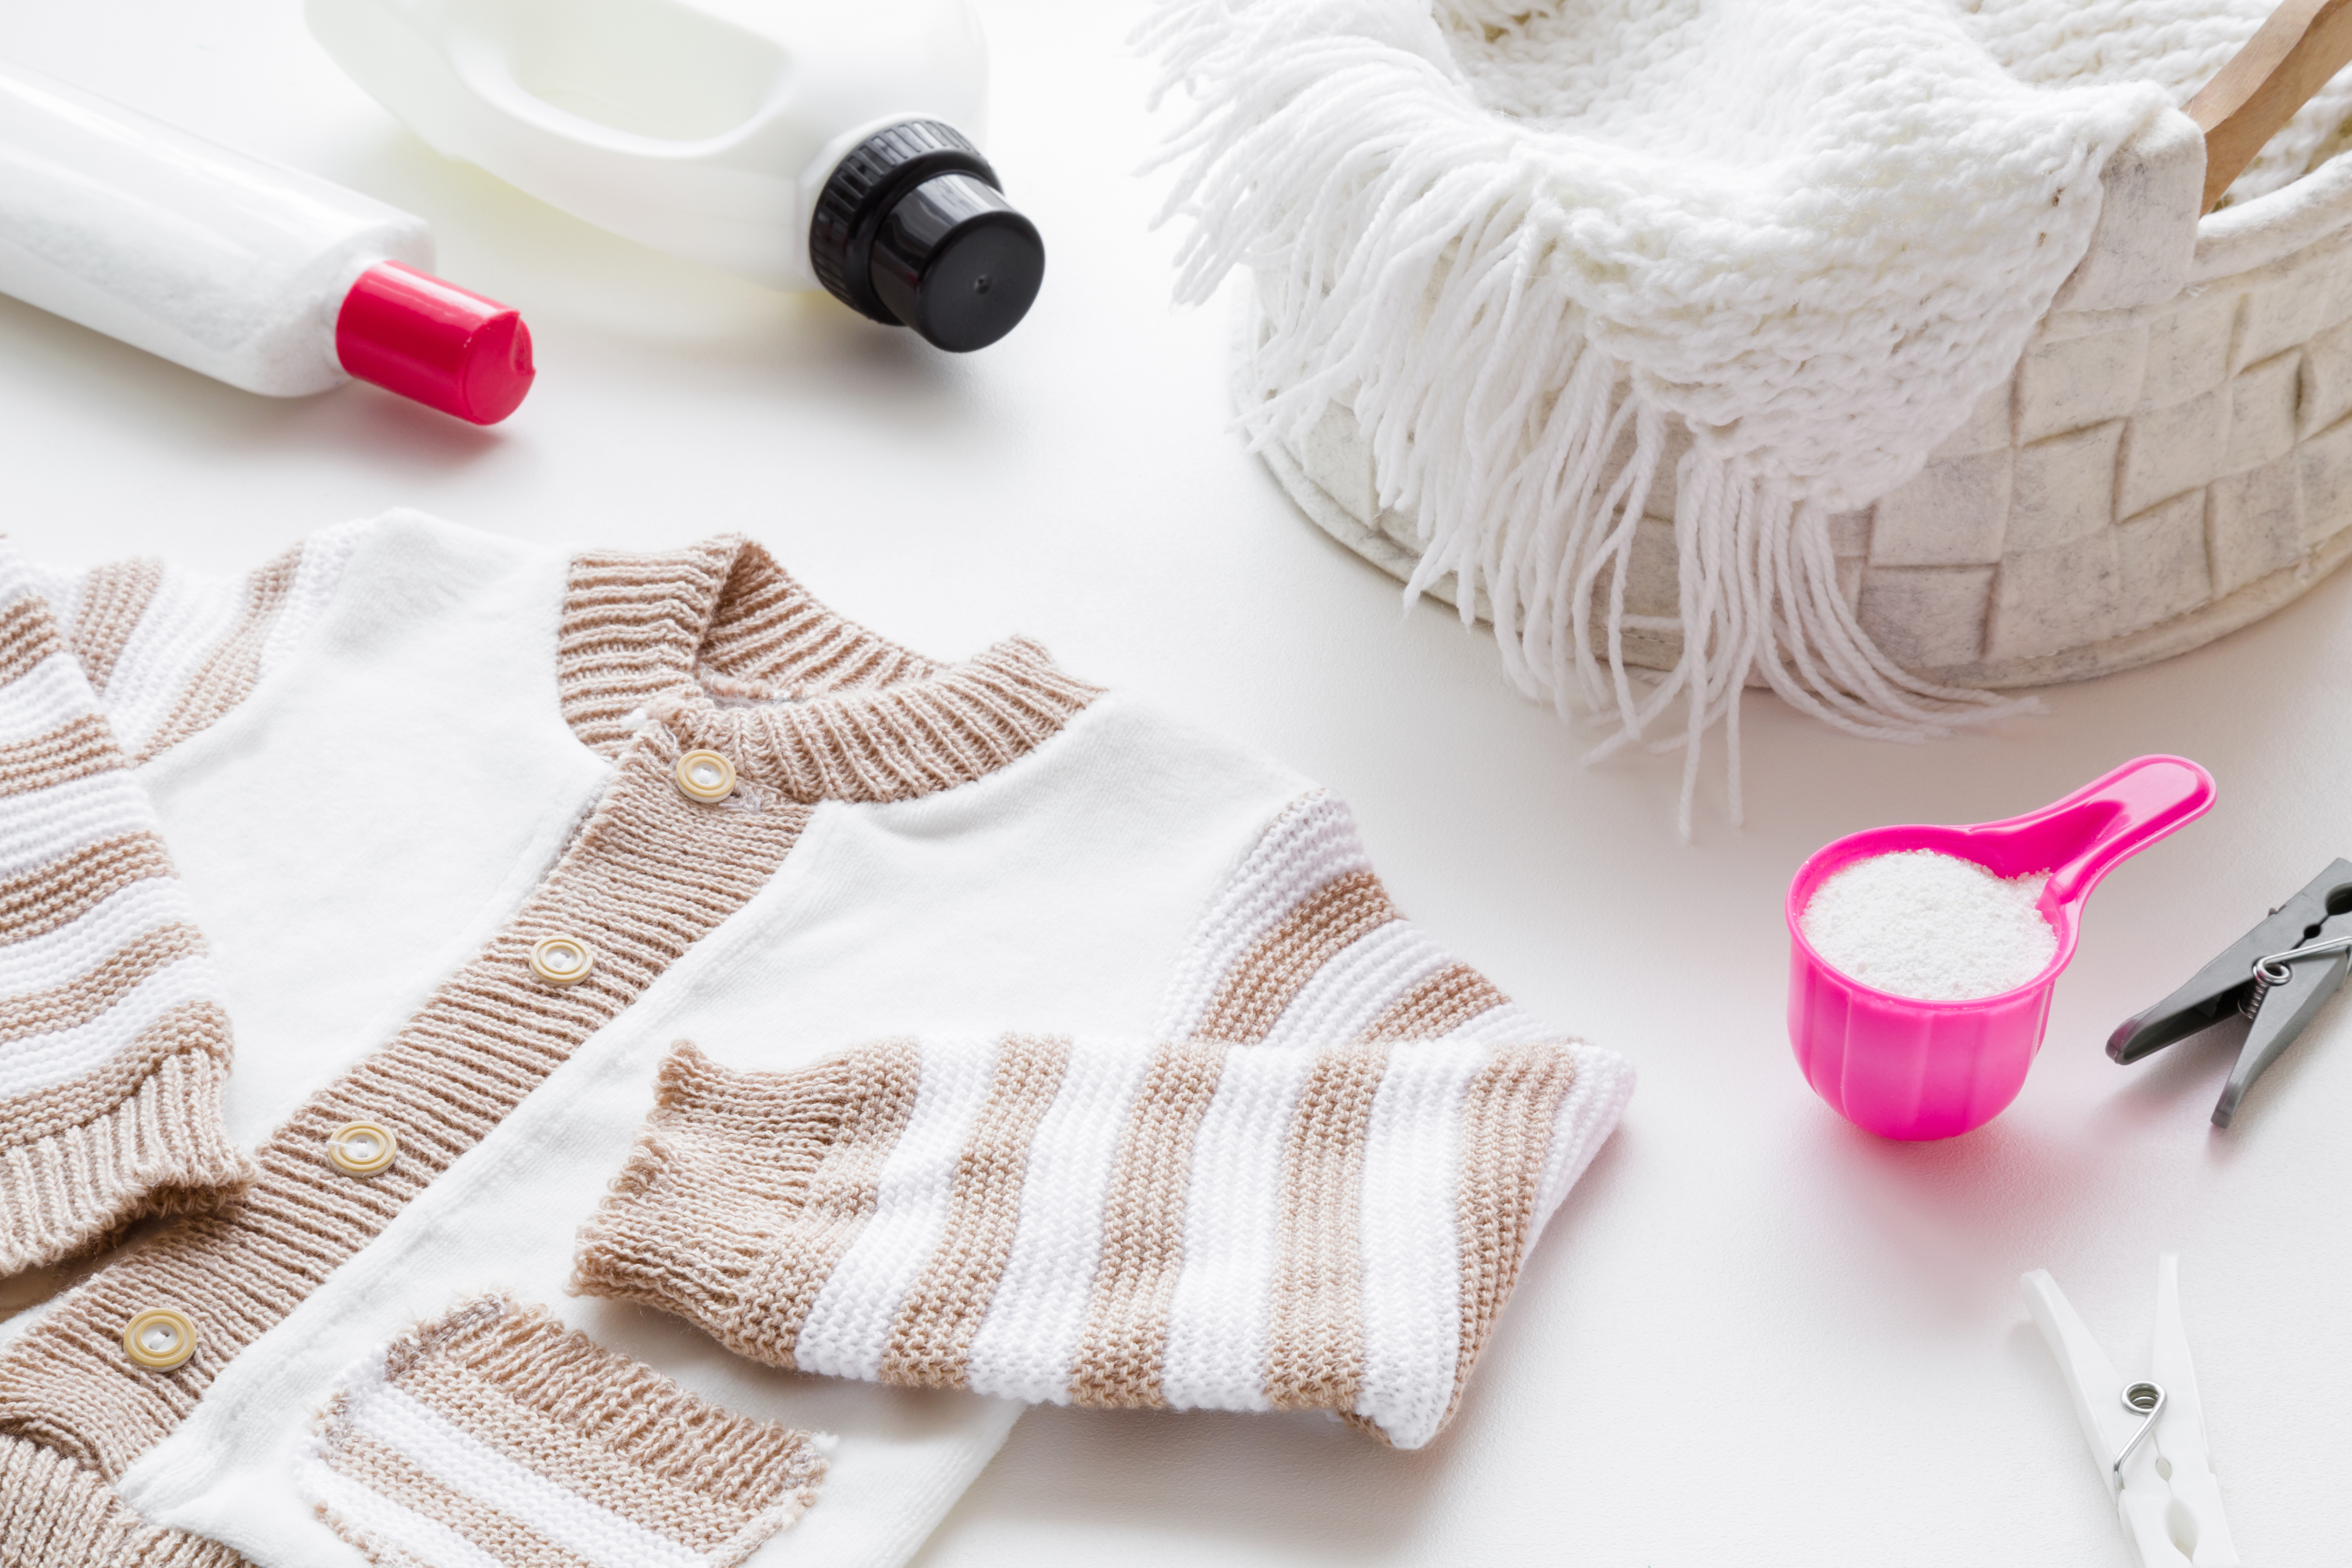 White and light brown, warm child sweater on table. Different washing detergents. Pink cup or scoop of white powder and softener. Regular washing. Mother and father duties.